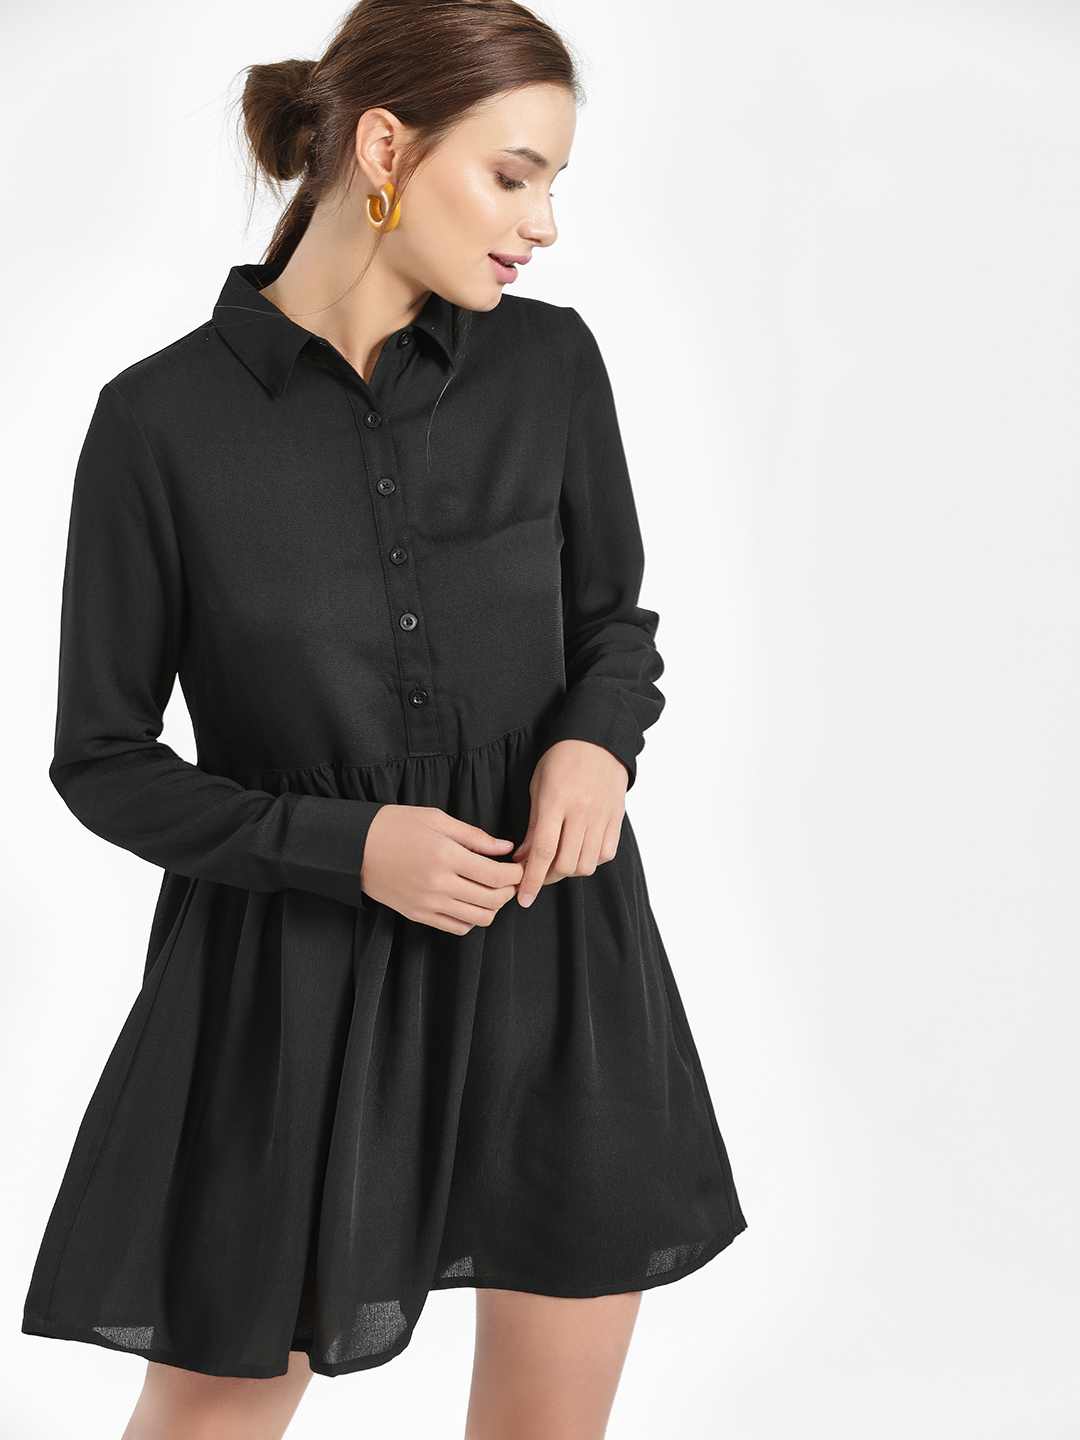 KOOVS Black Basic Collar Skater Dress 1